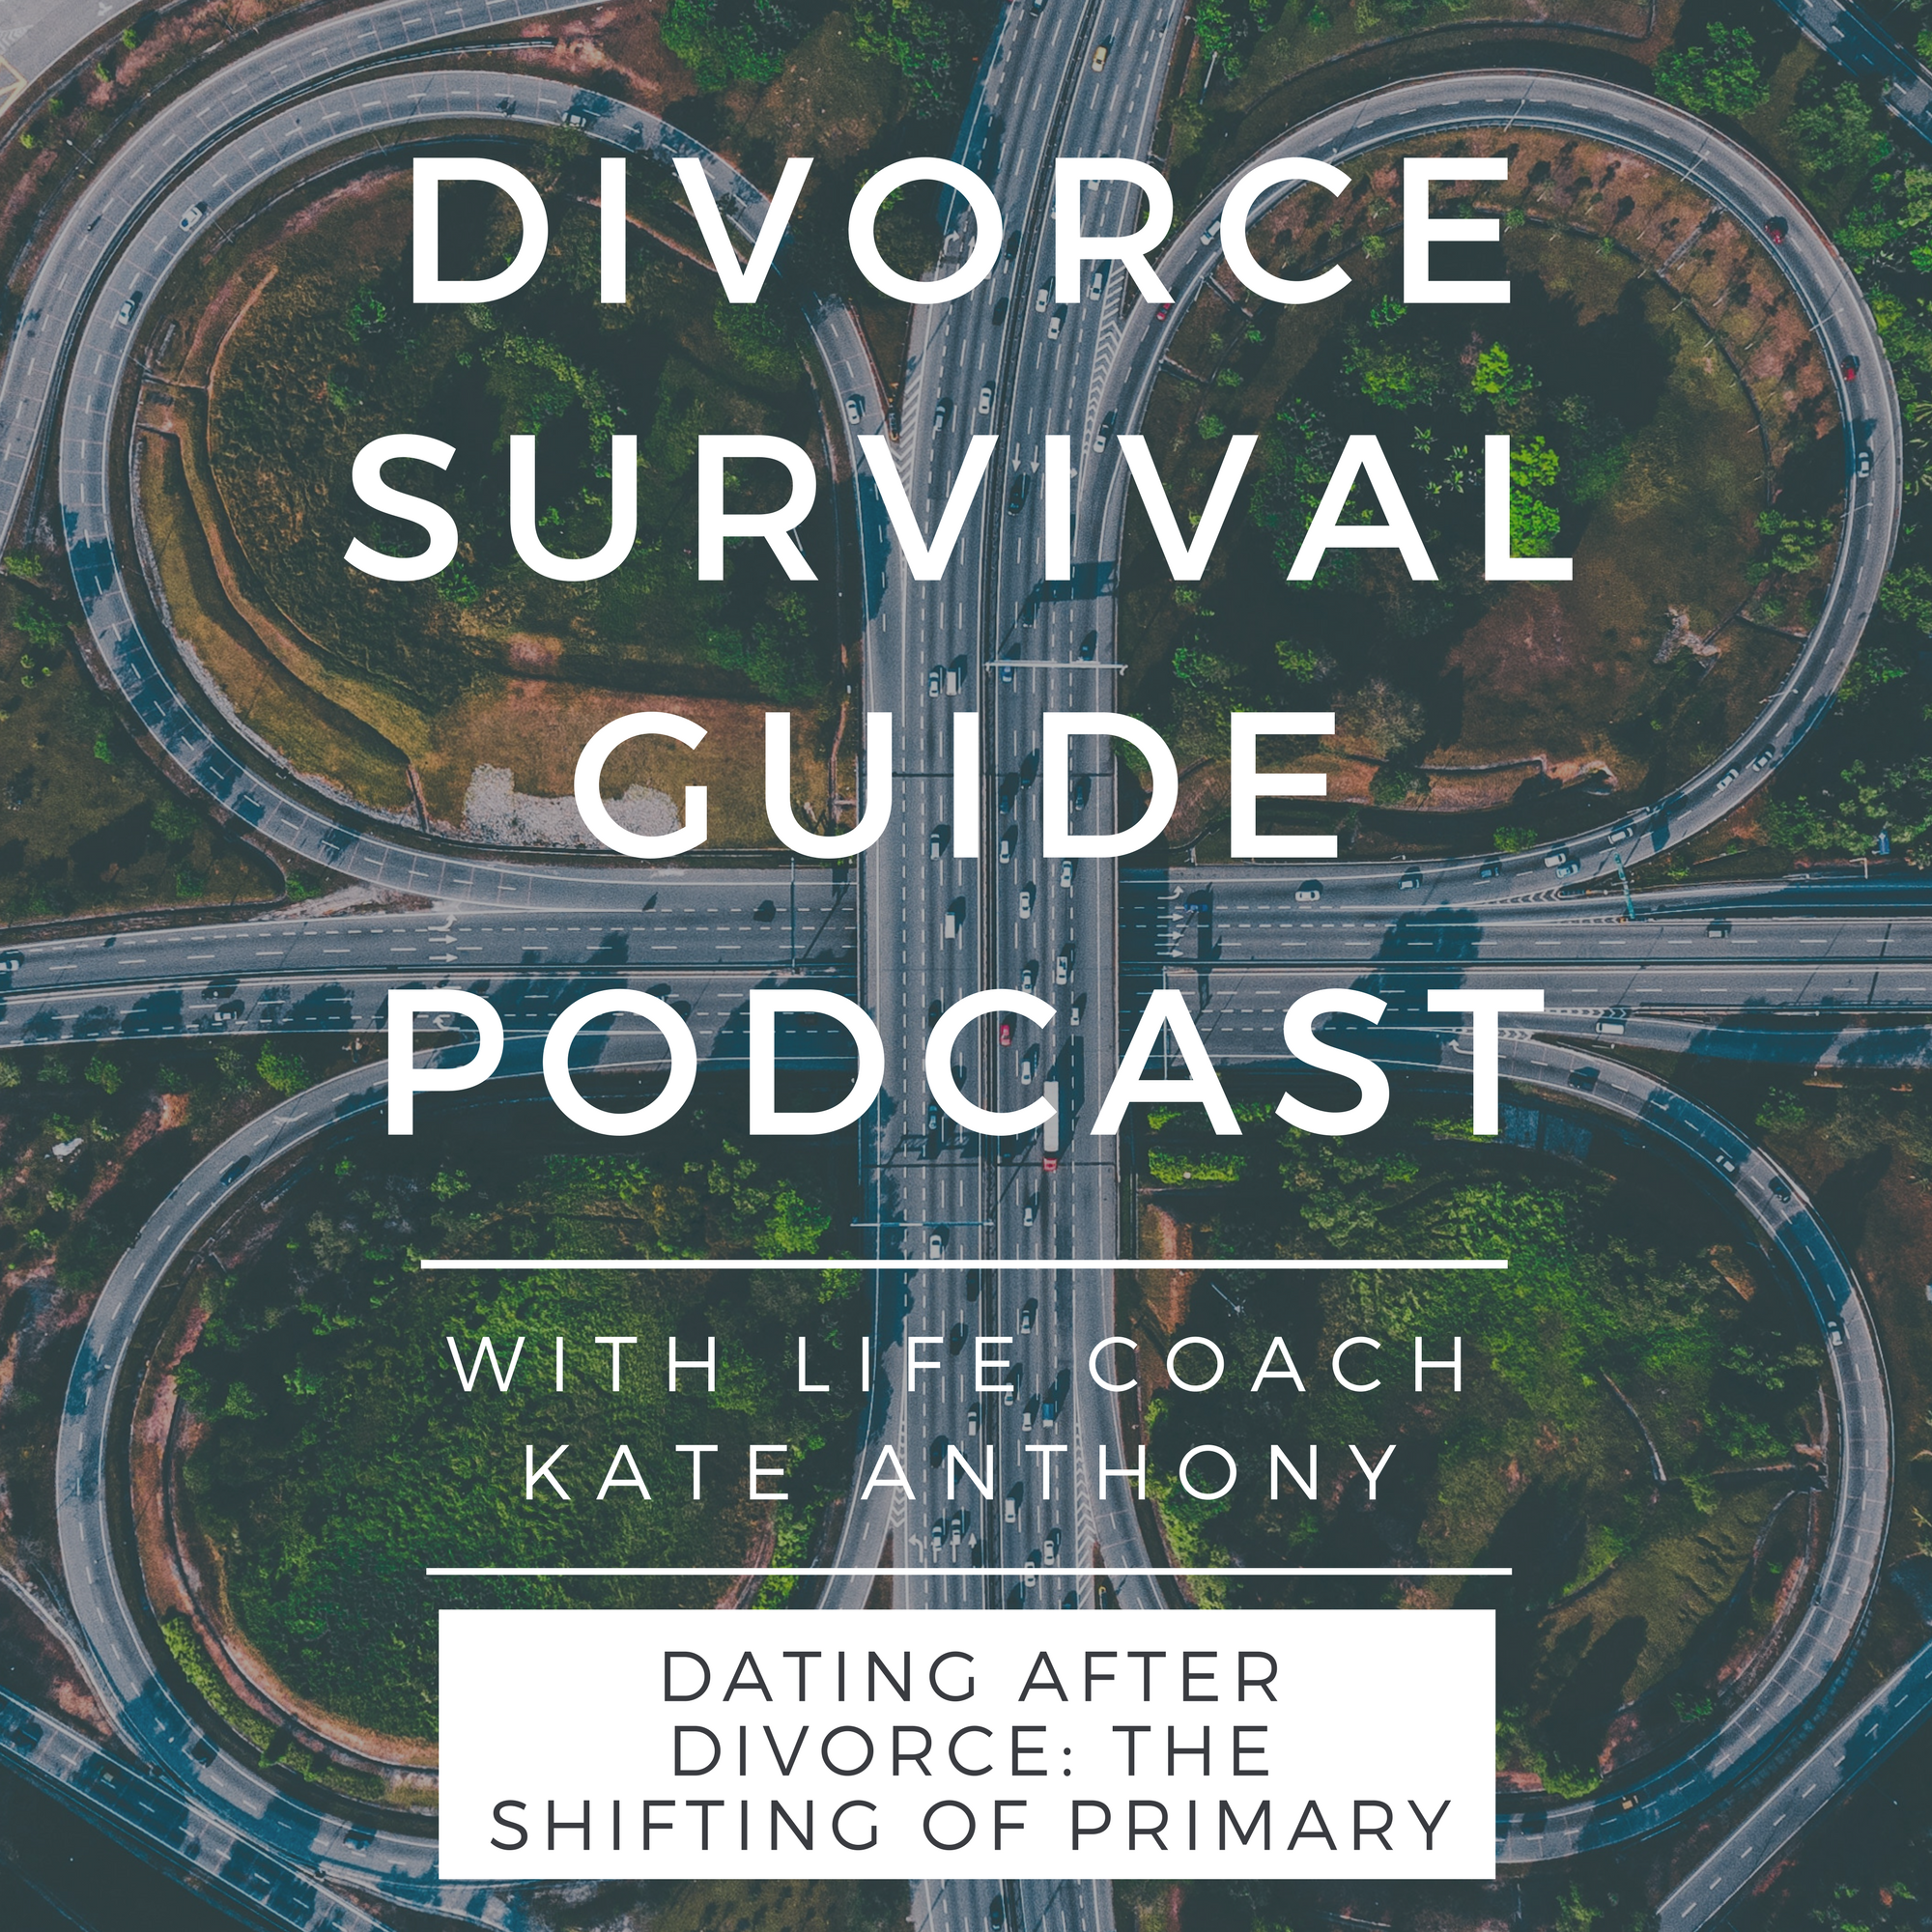 The Divorce Survival Guide Podcast - Dating After Divorce: Shifting of Primary